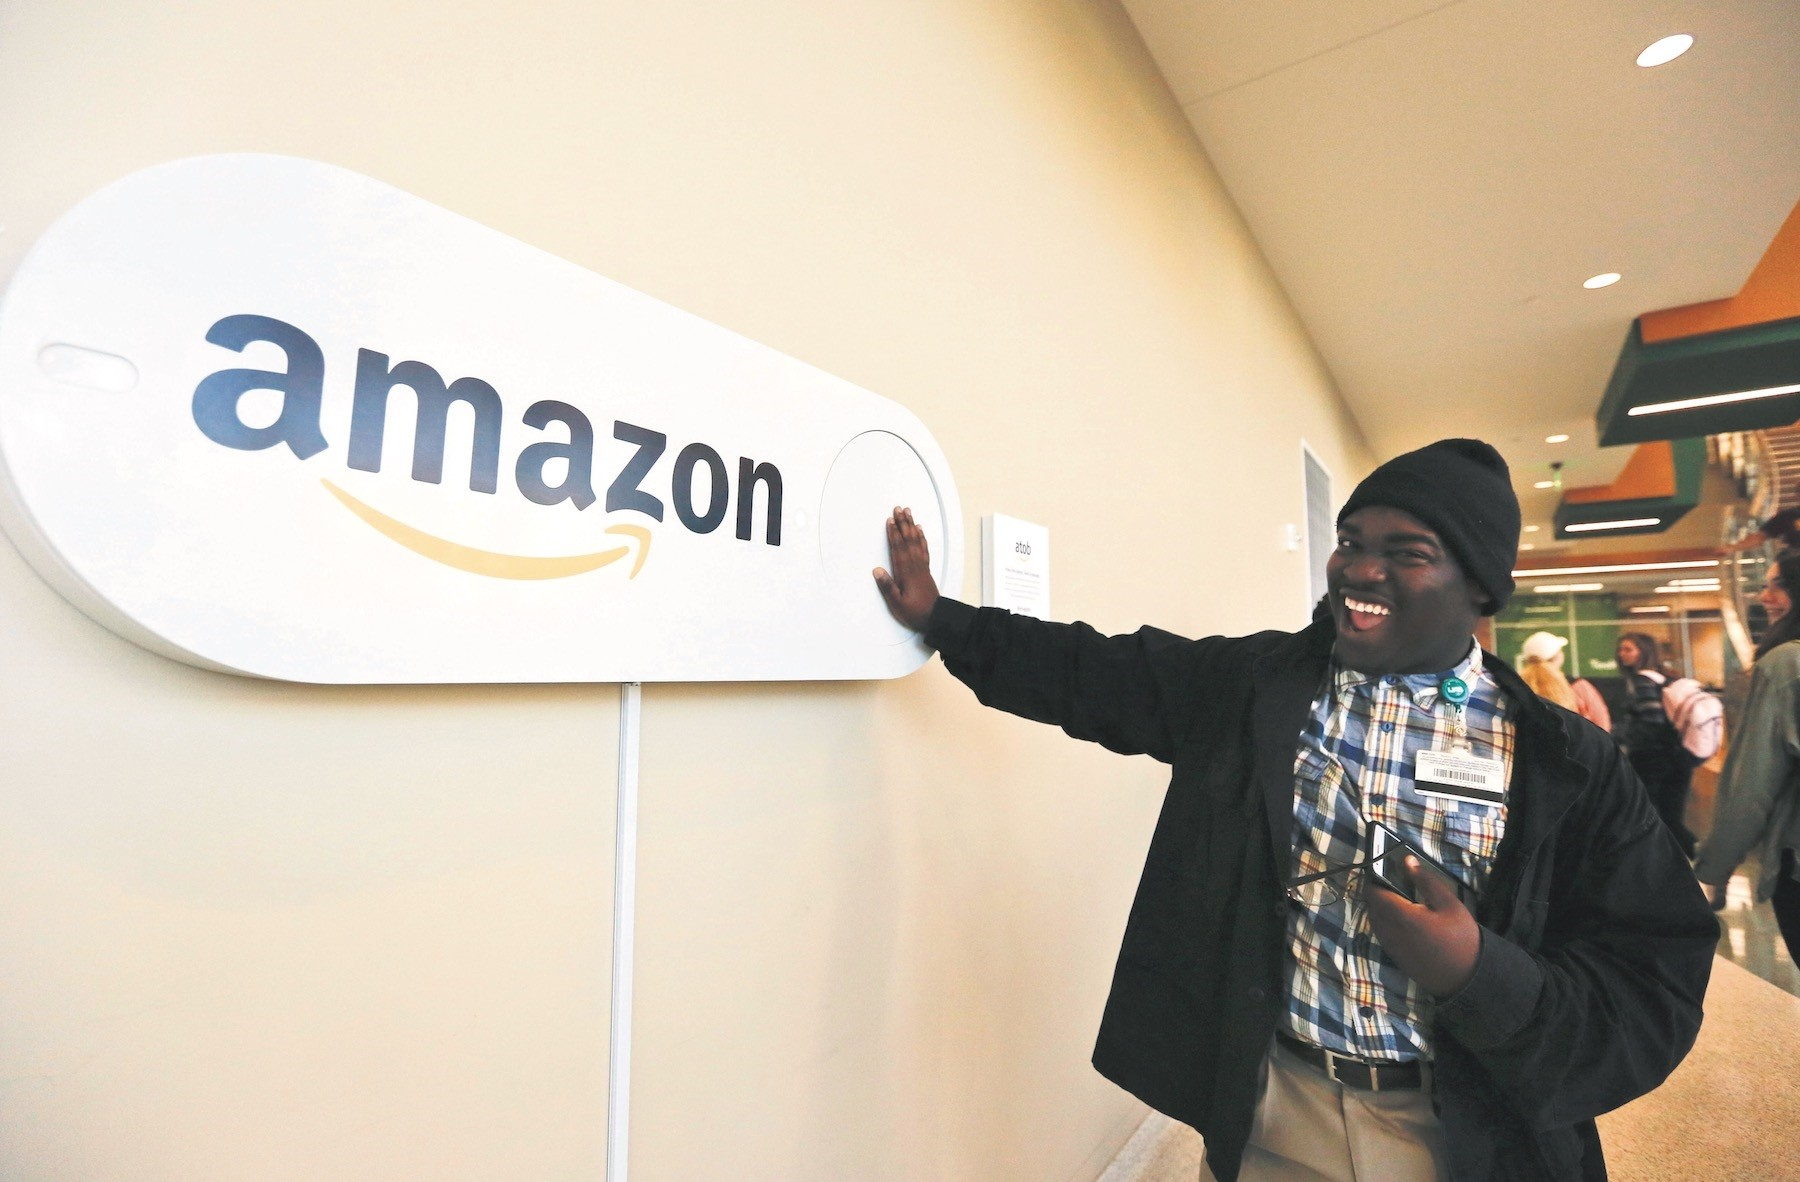 Zavian Tate, a student at the University of Alabama at Birmingham, pushes a large Amazon Dash button, in Birmingham, AL. The buttons are part of the cityu2019s campaign to lure Amazonu2019s second headquarters to Birmingham.